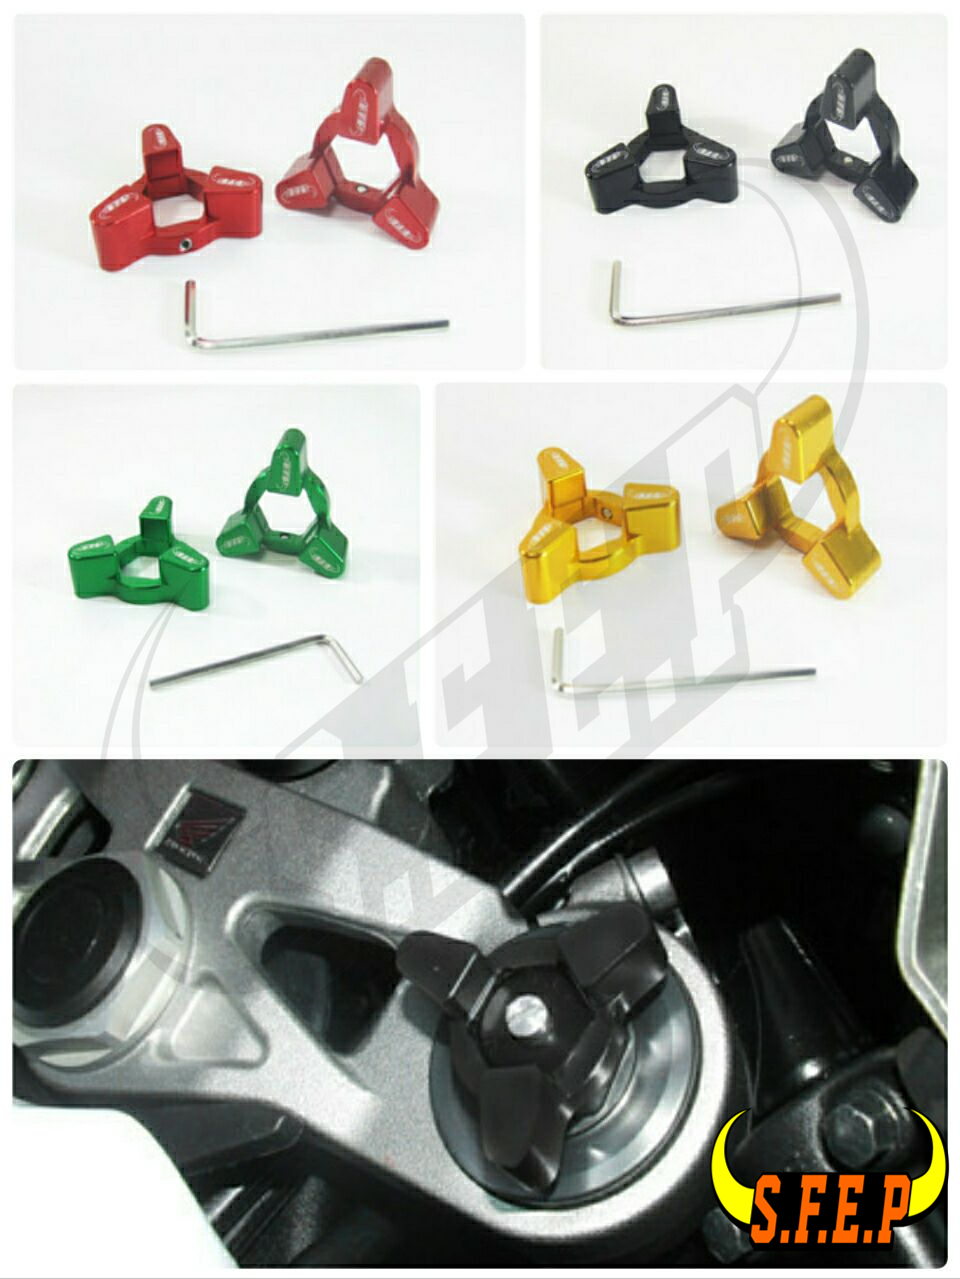 Motorcycle CNC Fork Preload Adjusters For Triumph Daytona 675 06-10/ 675 Street Triple R 2009